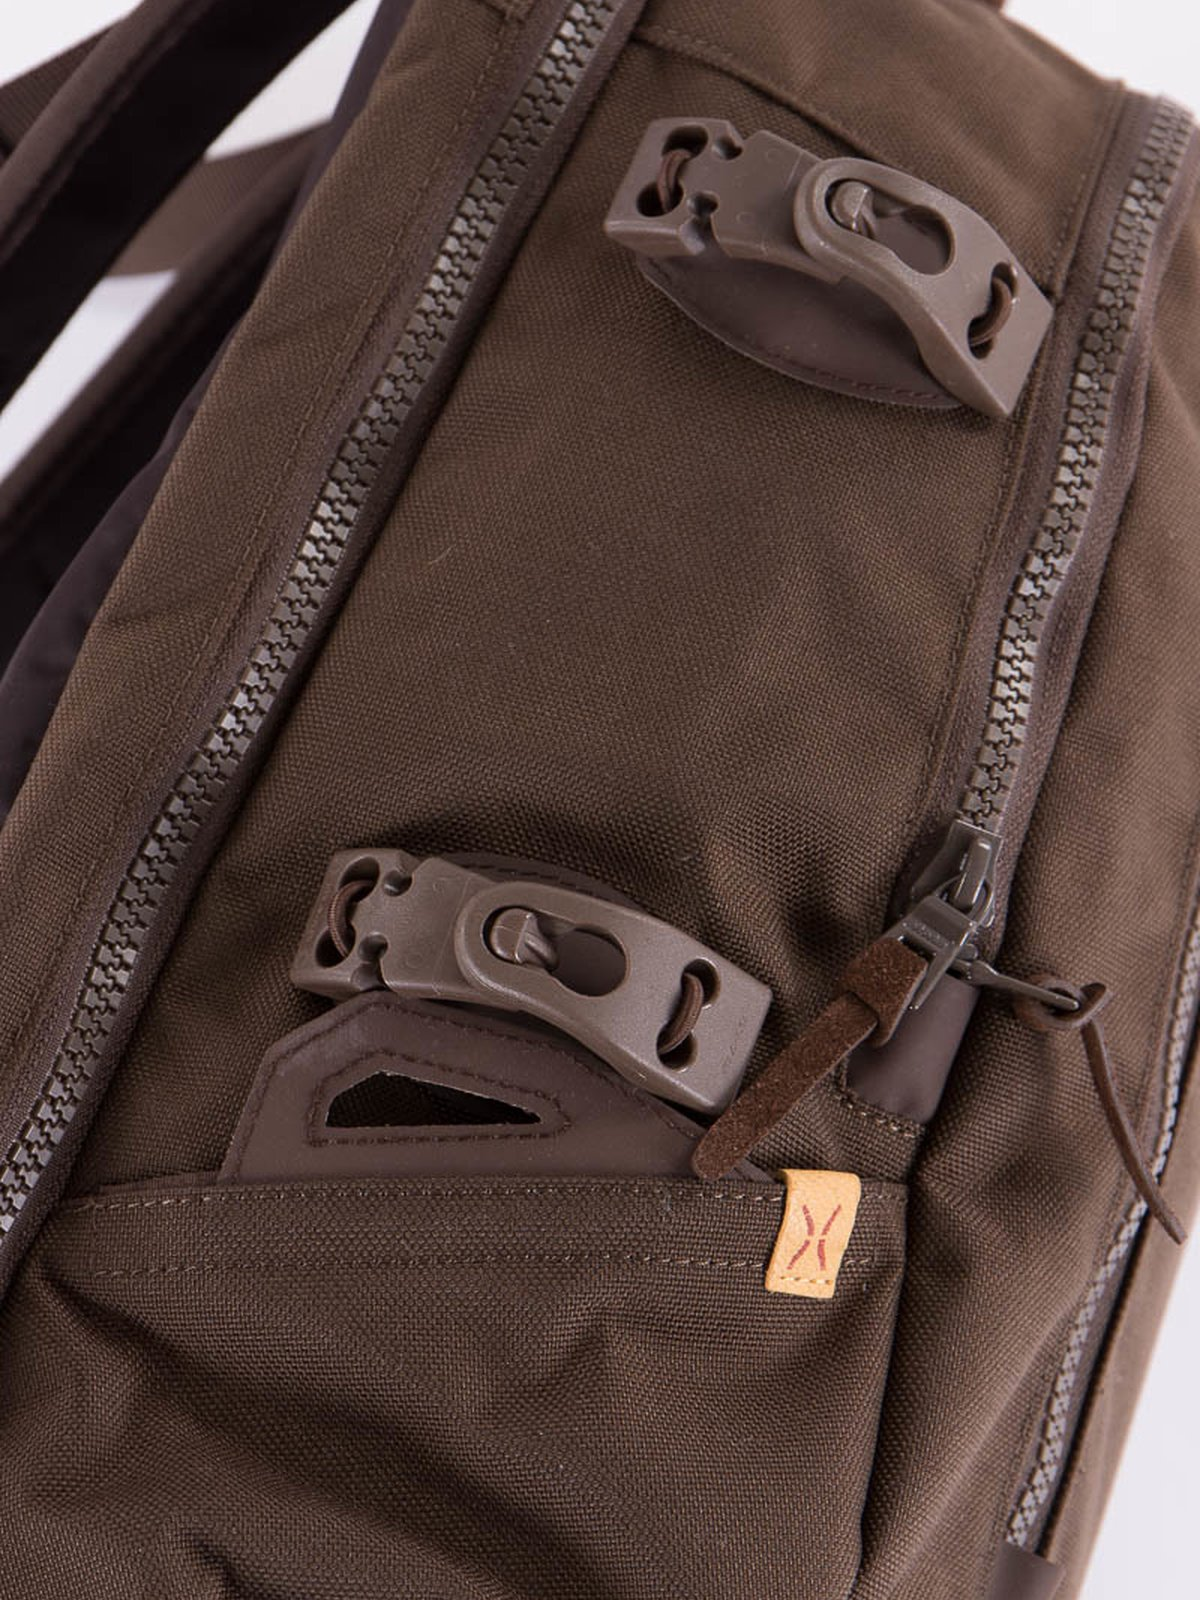 Brown 20L Cordura Backpack - Image 3